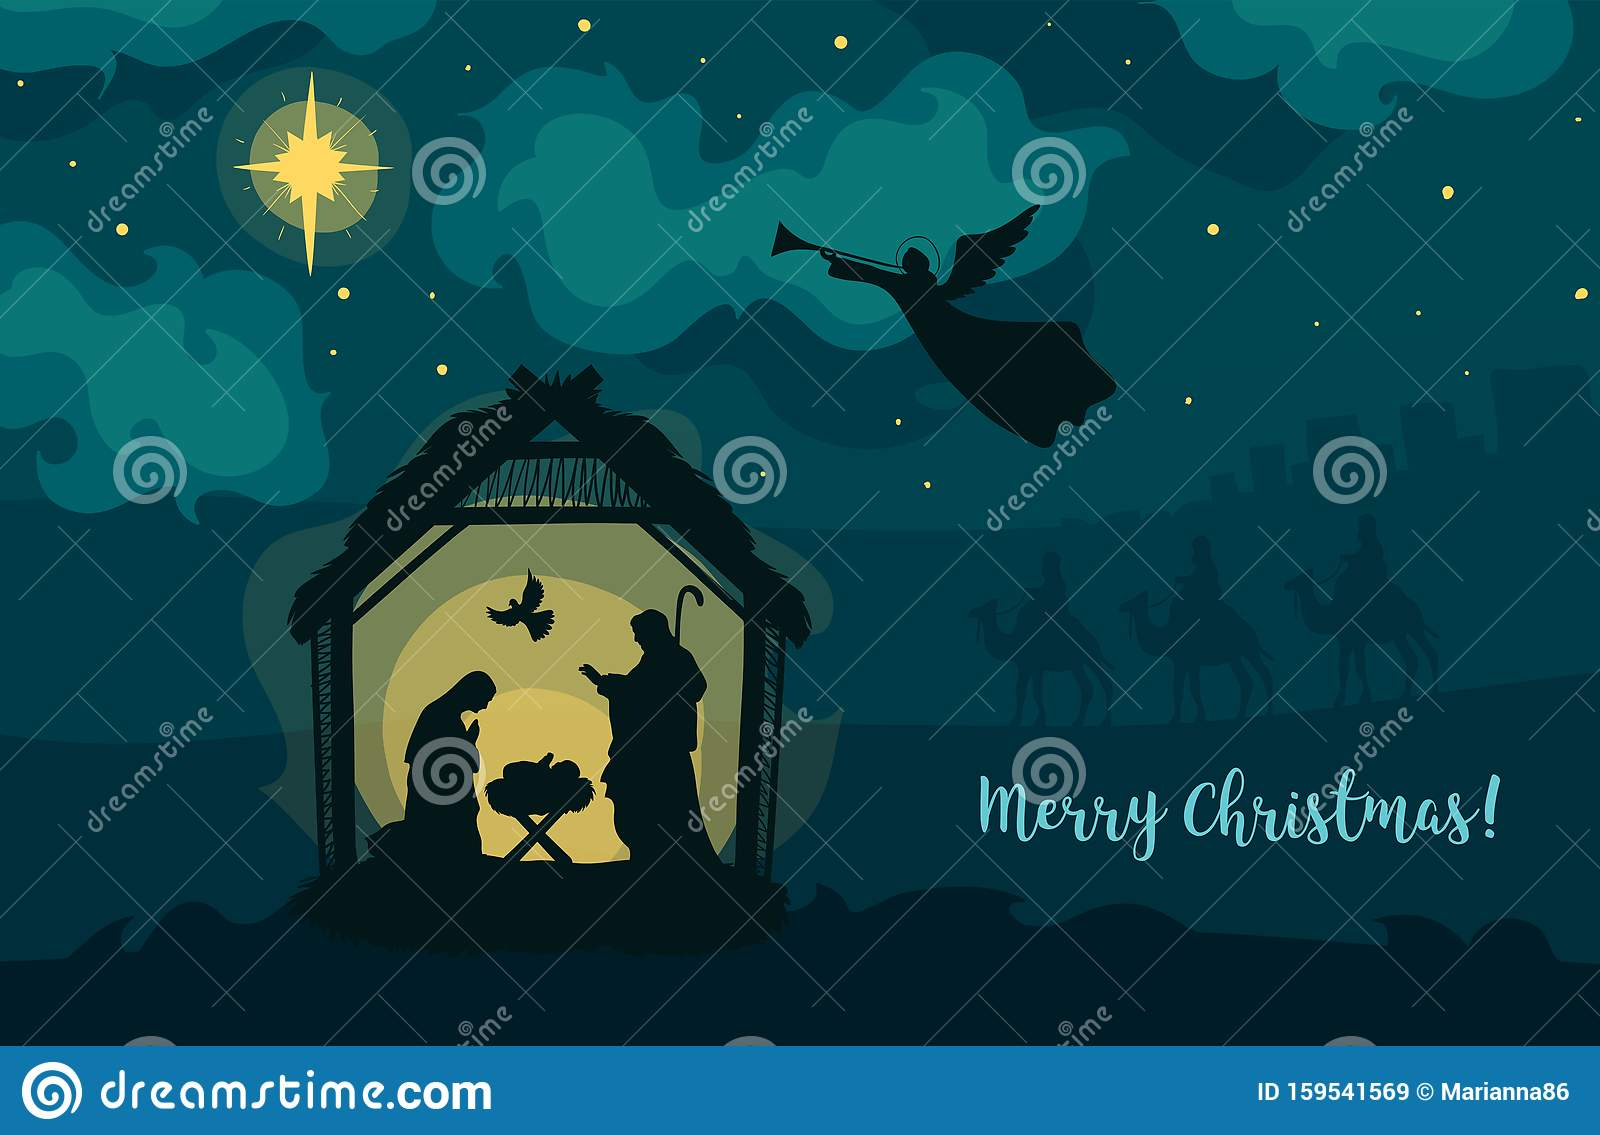 Greeting Card Of Traditional Christian Christmas Nativity Scene Of Baby Jesus In The Manger With Mary And Joseph In Stock Vector Illustration Of City Religious 159541569